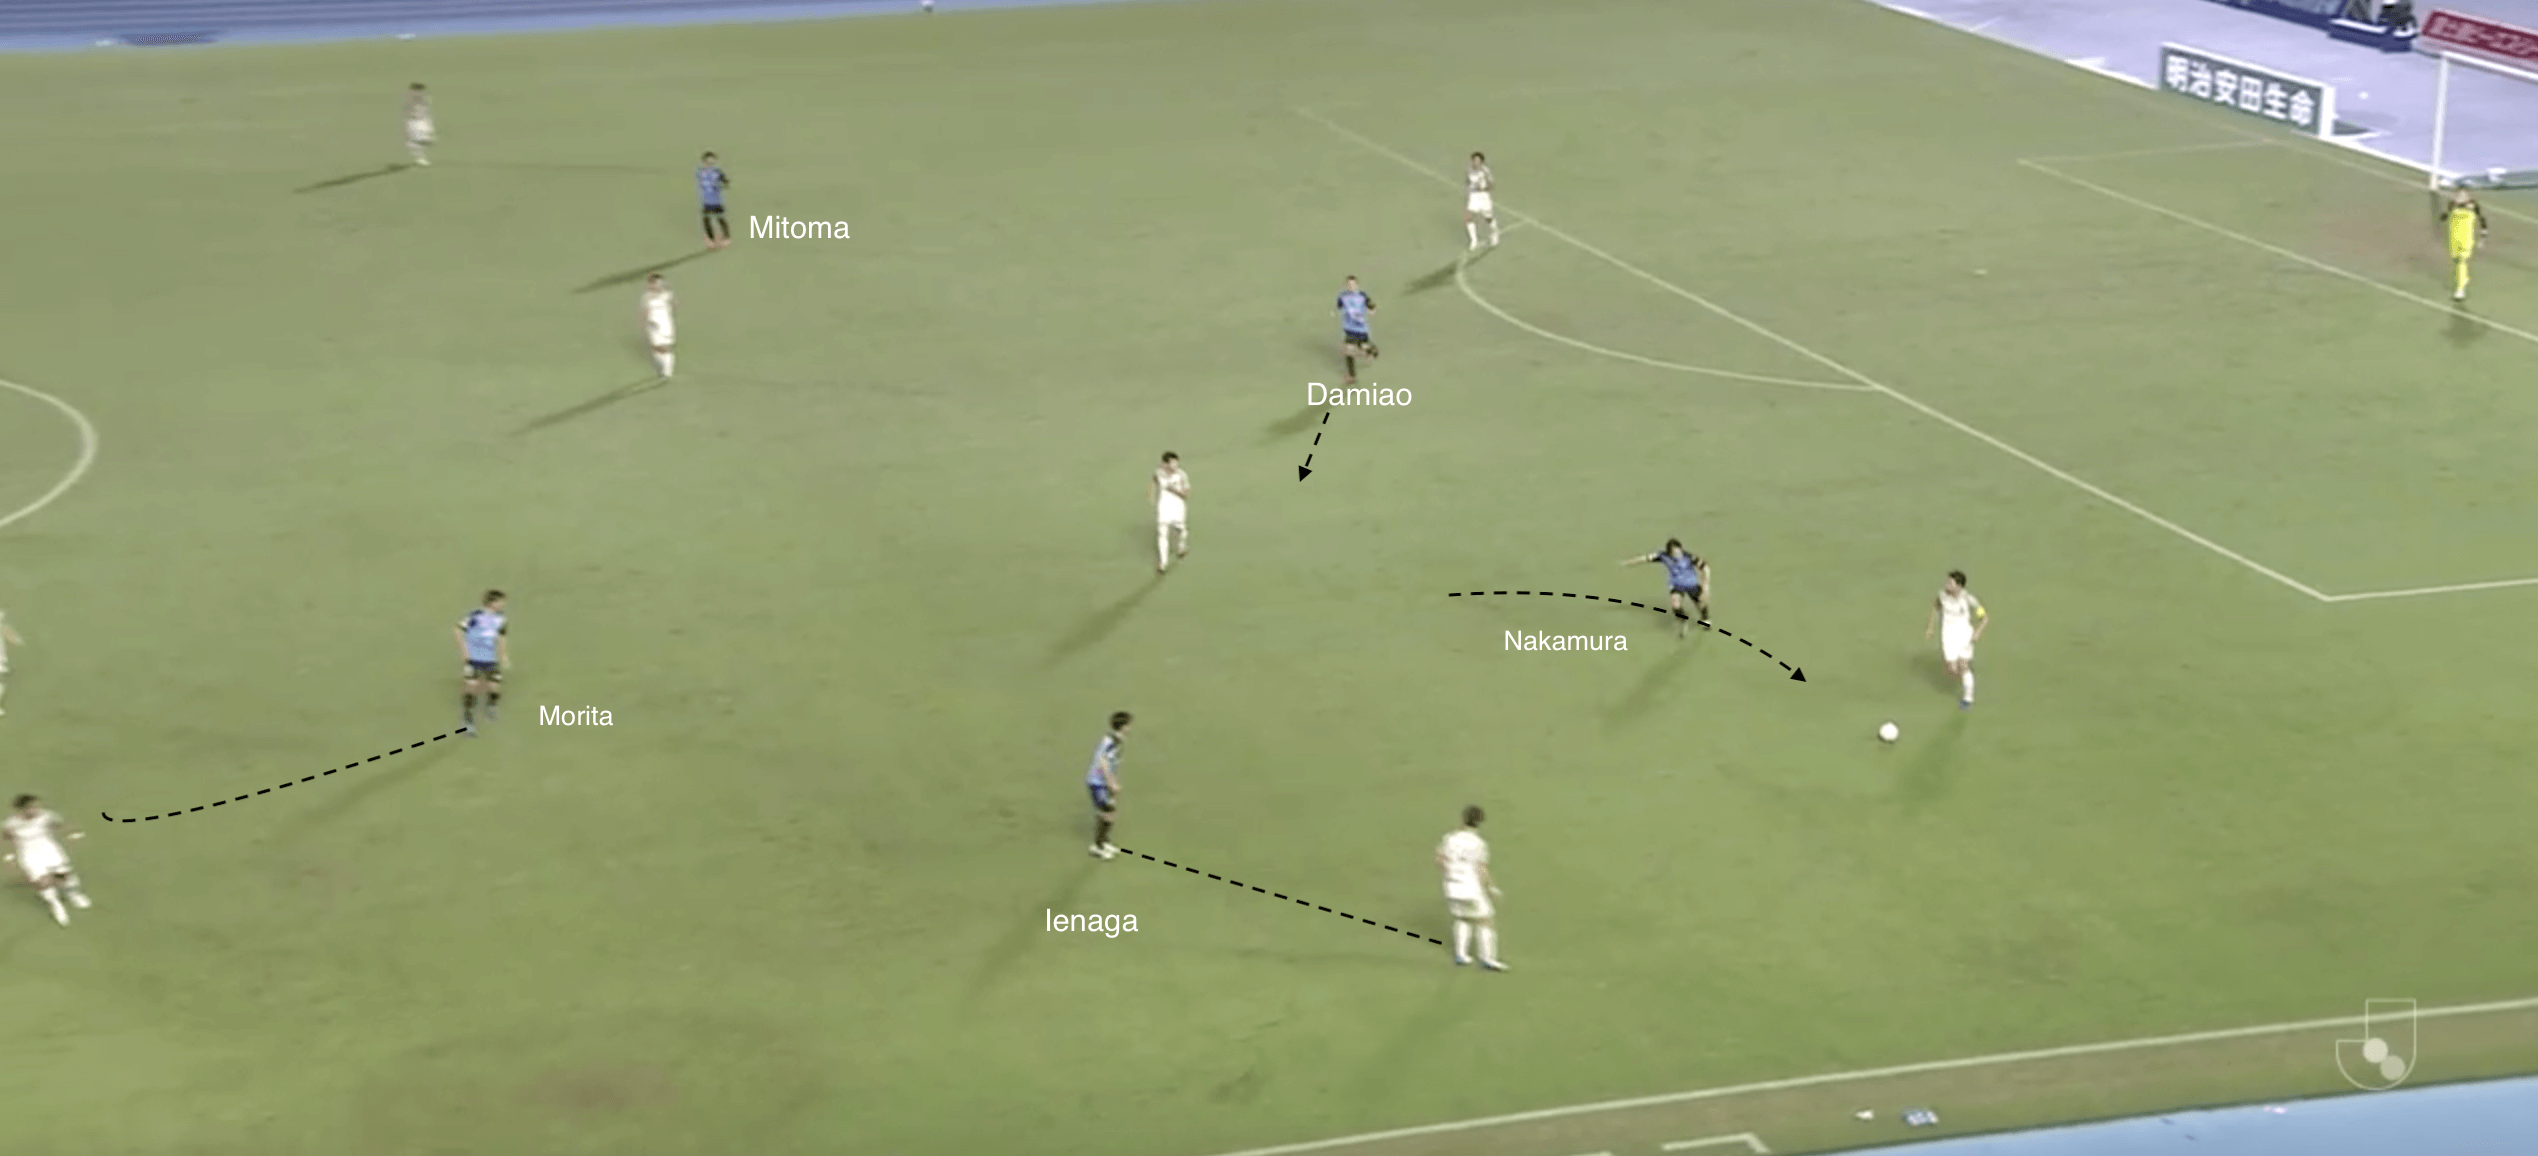 J League 2020: Kawasaki Frontale vs Nagoya Grampus - tactical analysis tactics